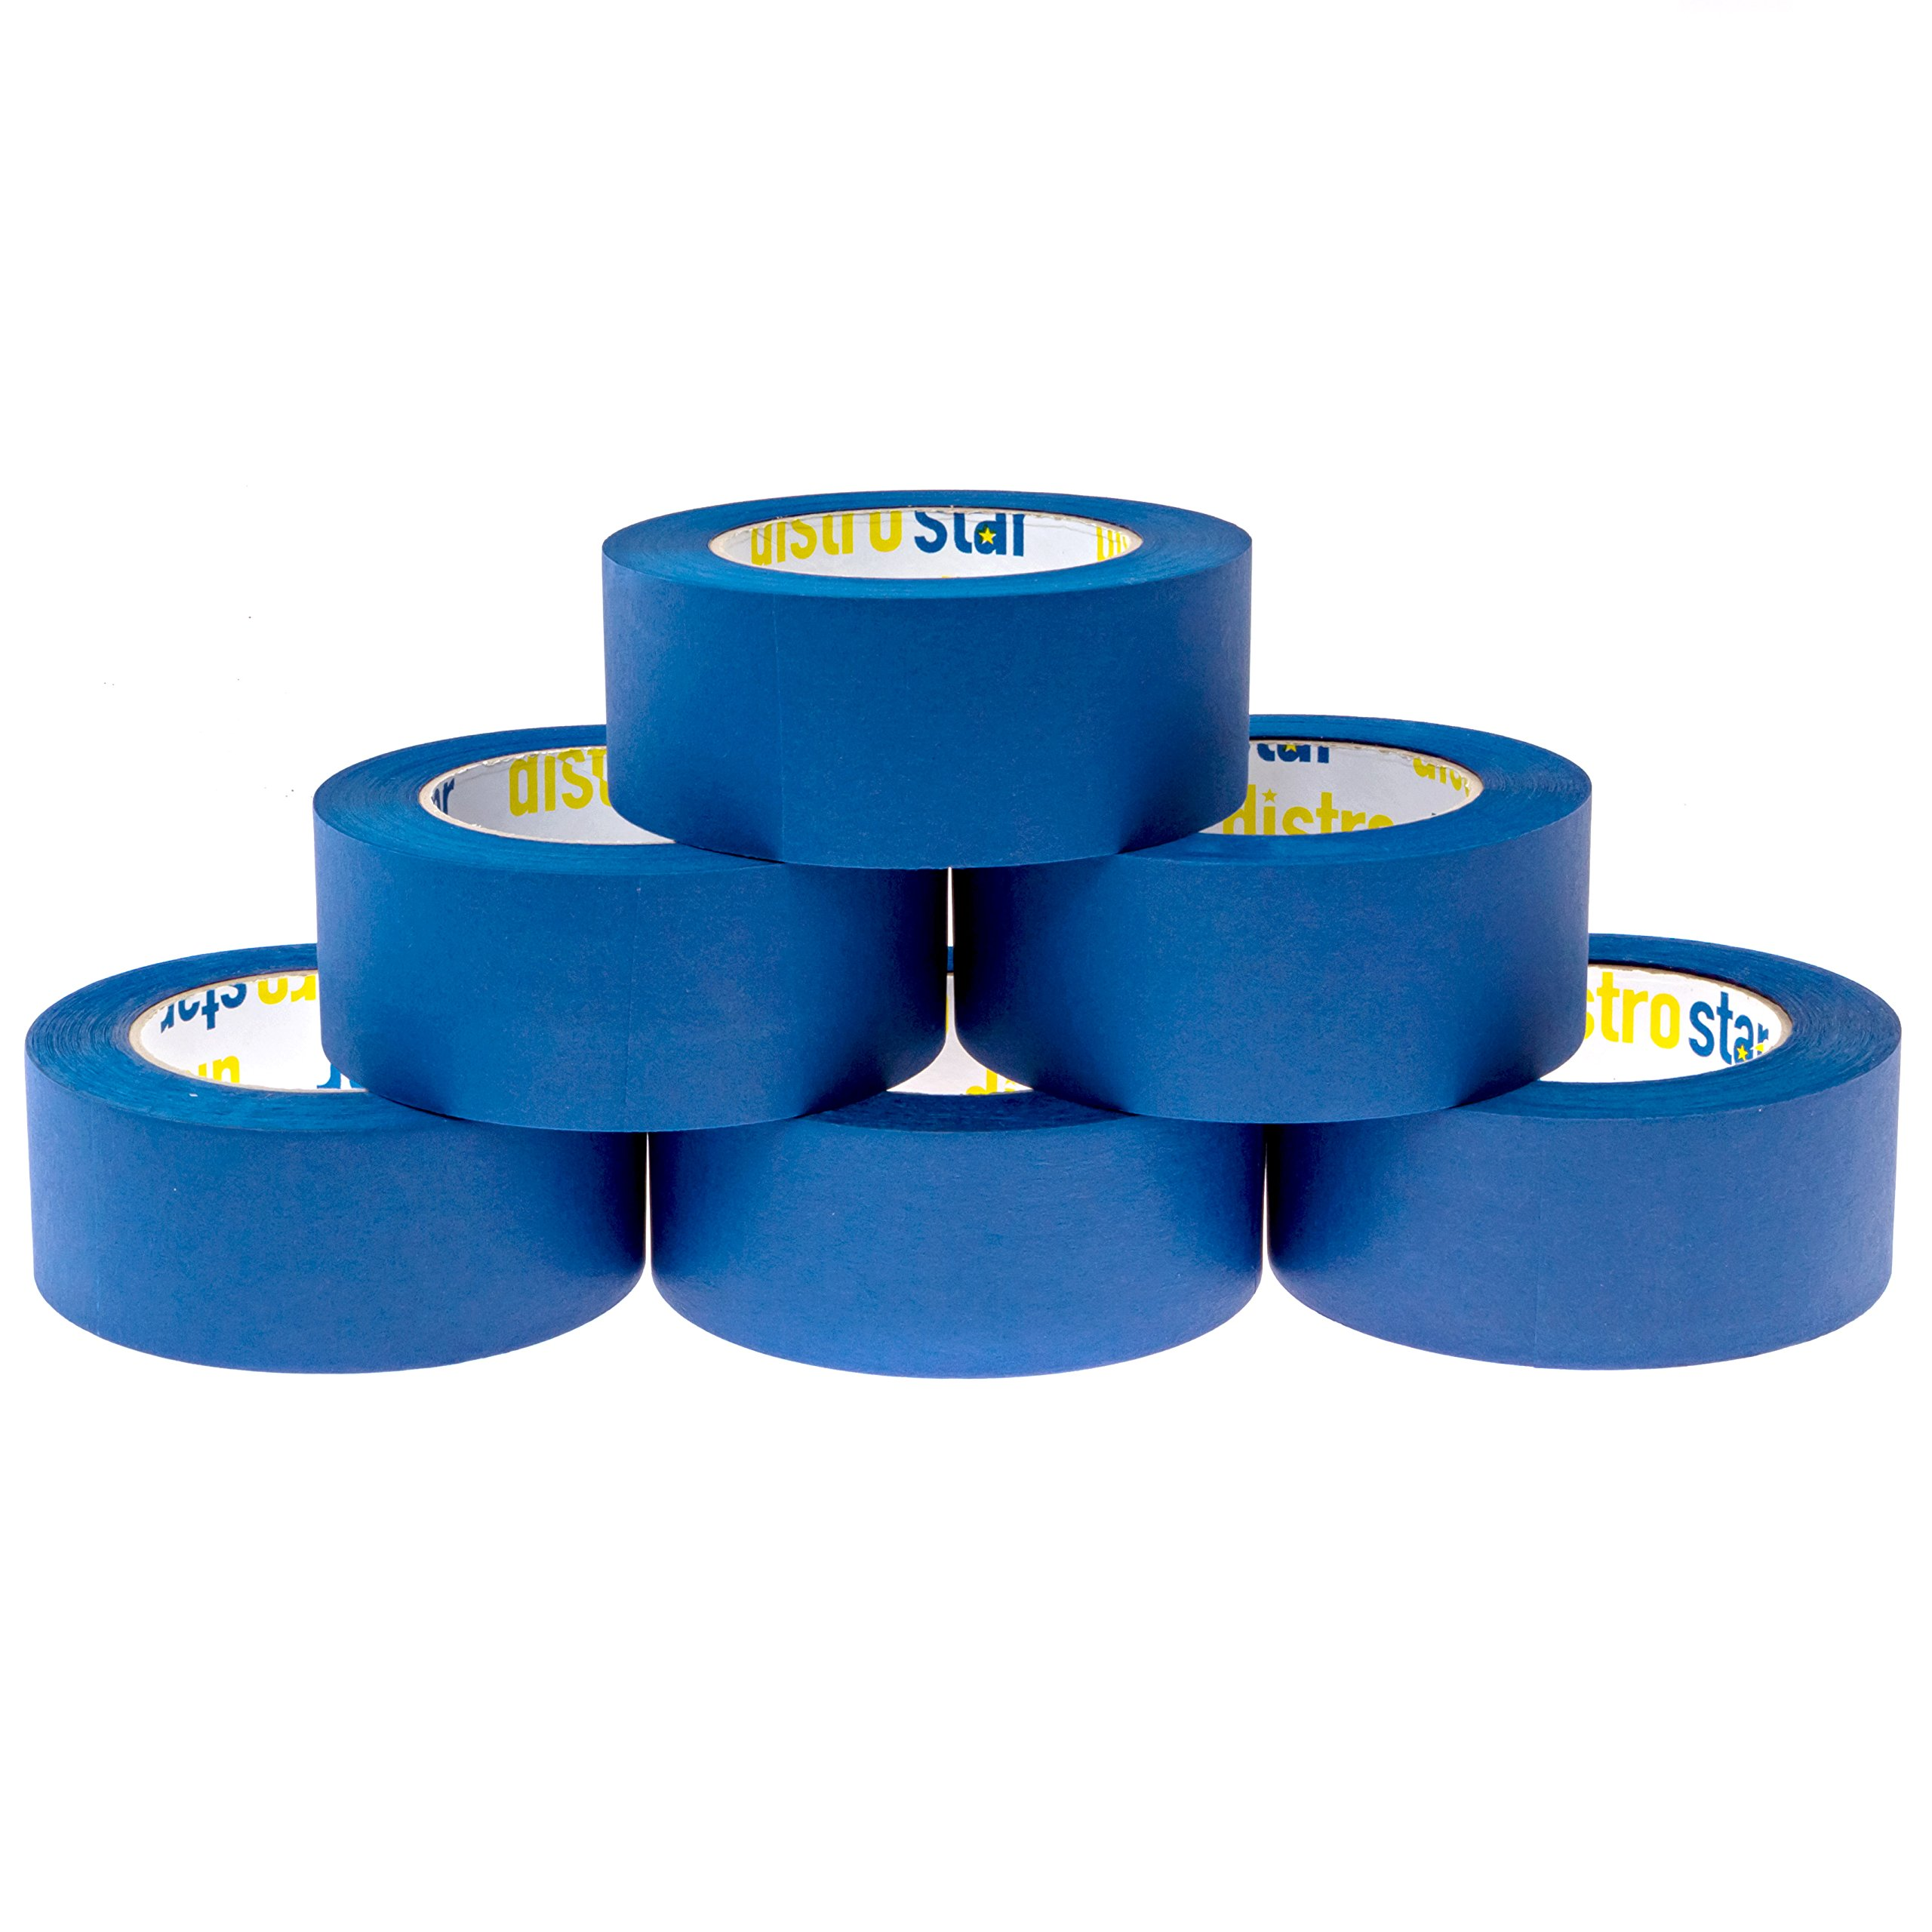 Painter's Tape Blue 2 inch (1.88 in x 60 yd) 6 Roll Contractor Pack UV Protection 21 Day Easy Peel Perfect Lines Humidity Resistant Paint Like A PRO Professional Painter Premium Quality Masking Value